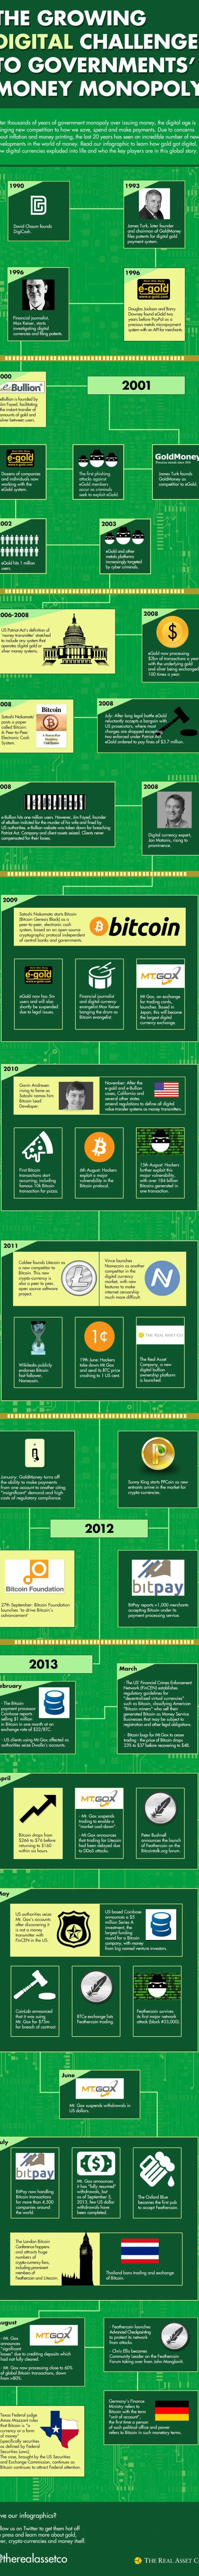 digi-money-infographic